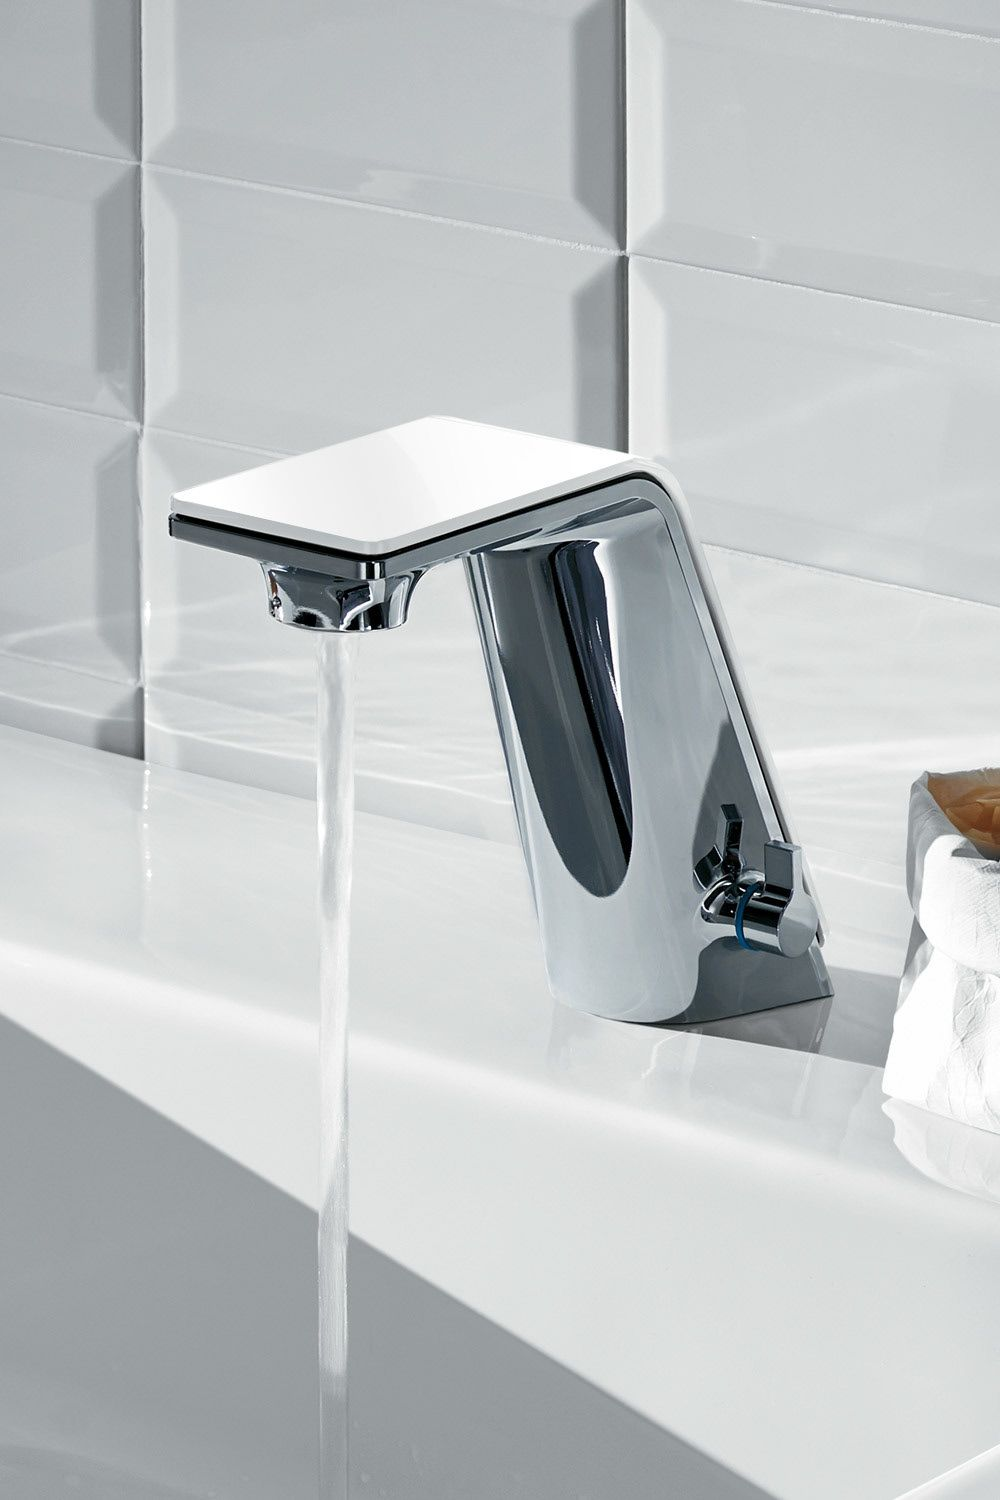 Sense Is A Family Of Smart Faucets Where Beauty Has A Holistic Meaning That Is Present In The Way They Ar Faucet Design Bathroom Faucets Kitchen Sink Faucets [ 1500 x 1000 Pixel ]